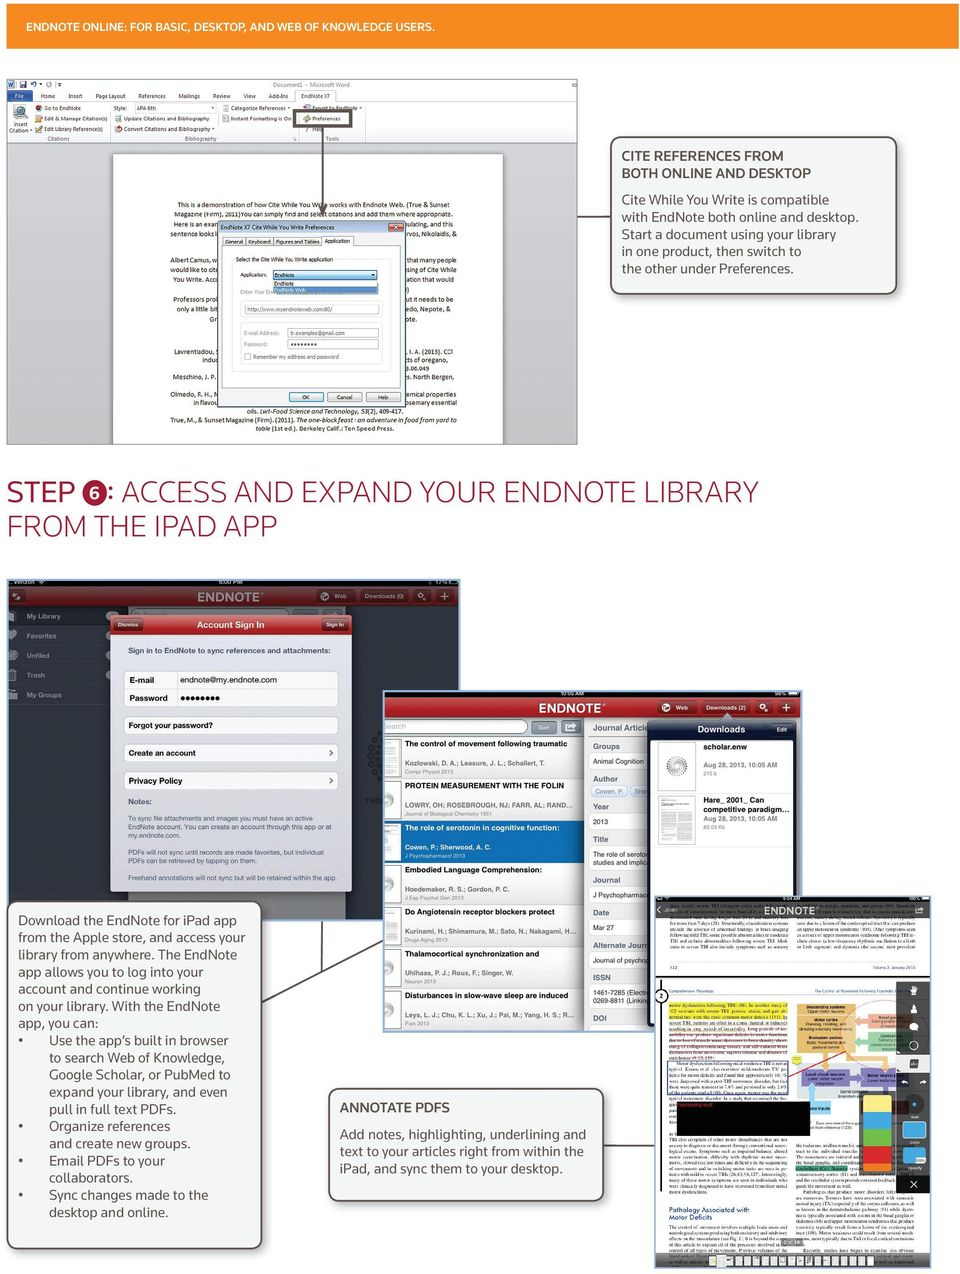 6 : ACCESS AND EXPAND YOUR ENDNOTE LIBRARY FROM THE IPAD APP Download the EndNote for ipad app from the Apple store, and access your library from anywhere.